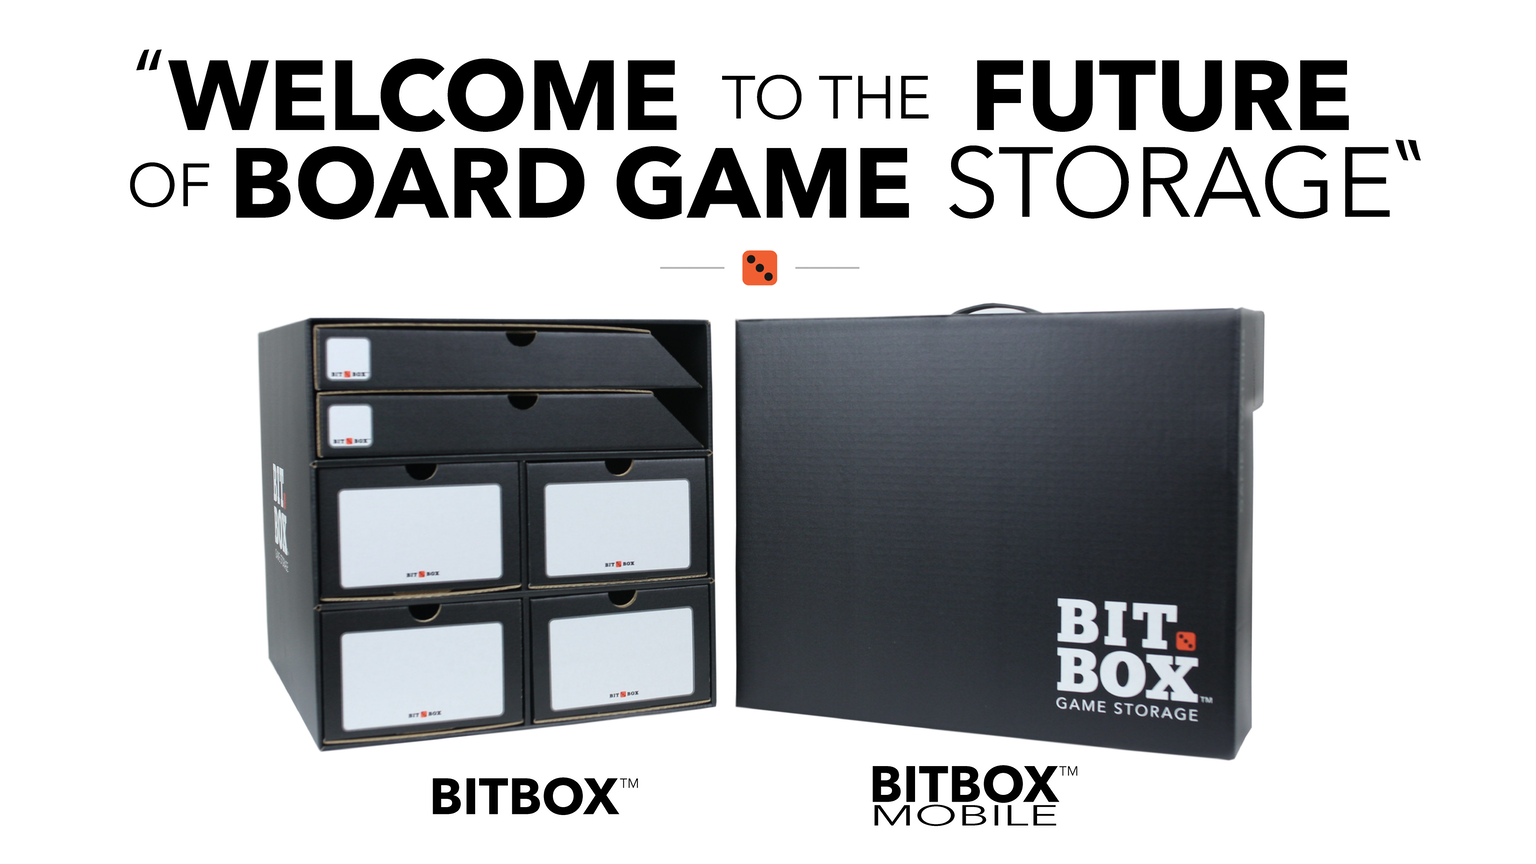 Transdimensional storage solution needed boardgamegeek for Board game storage solutions